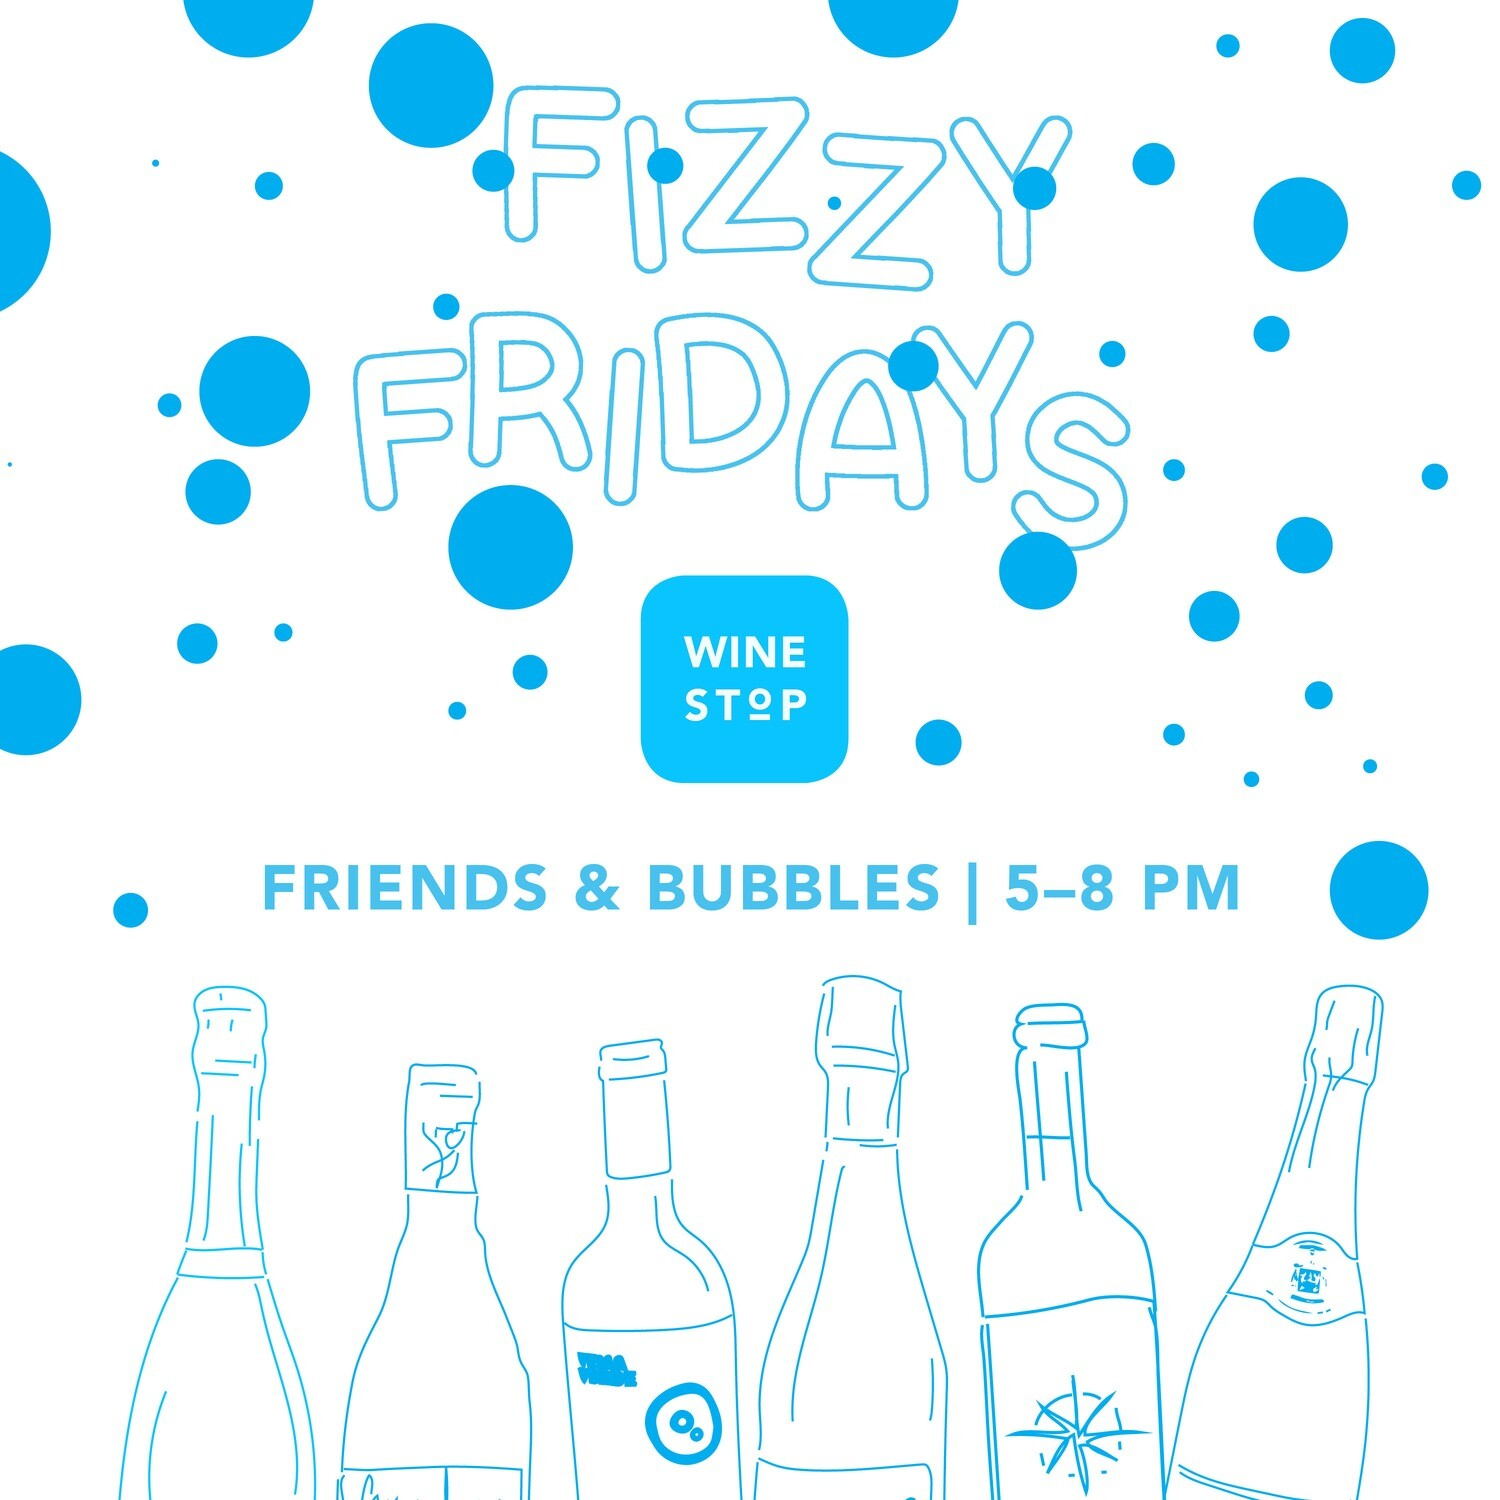 Every Friday: 'Friends & Bubbles'